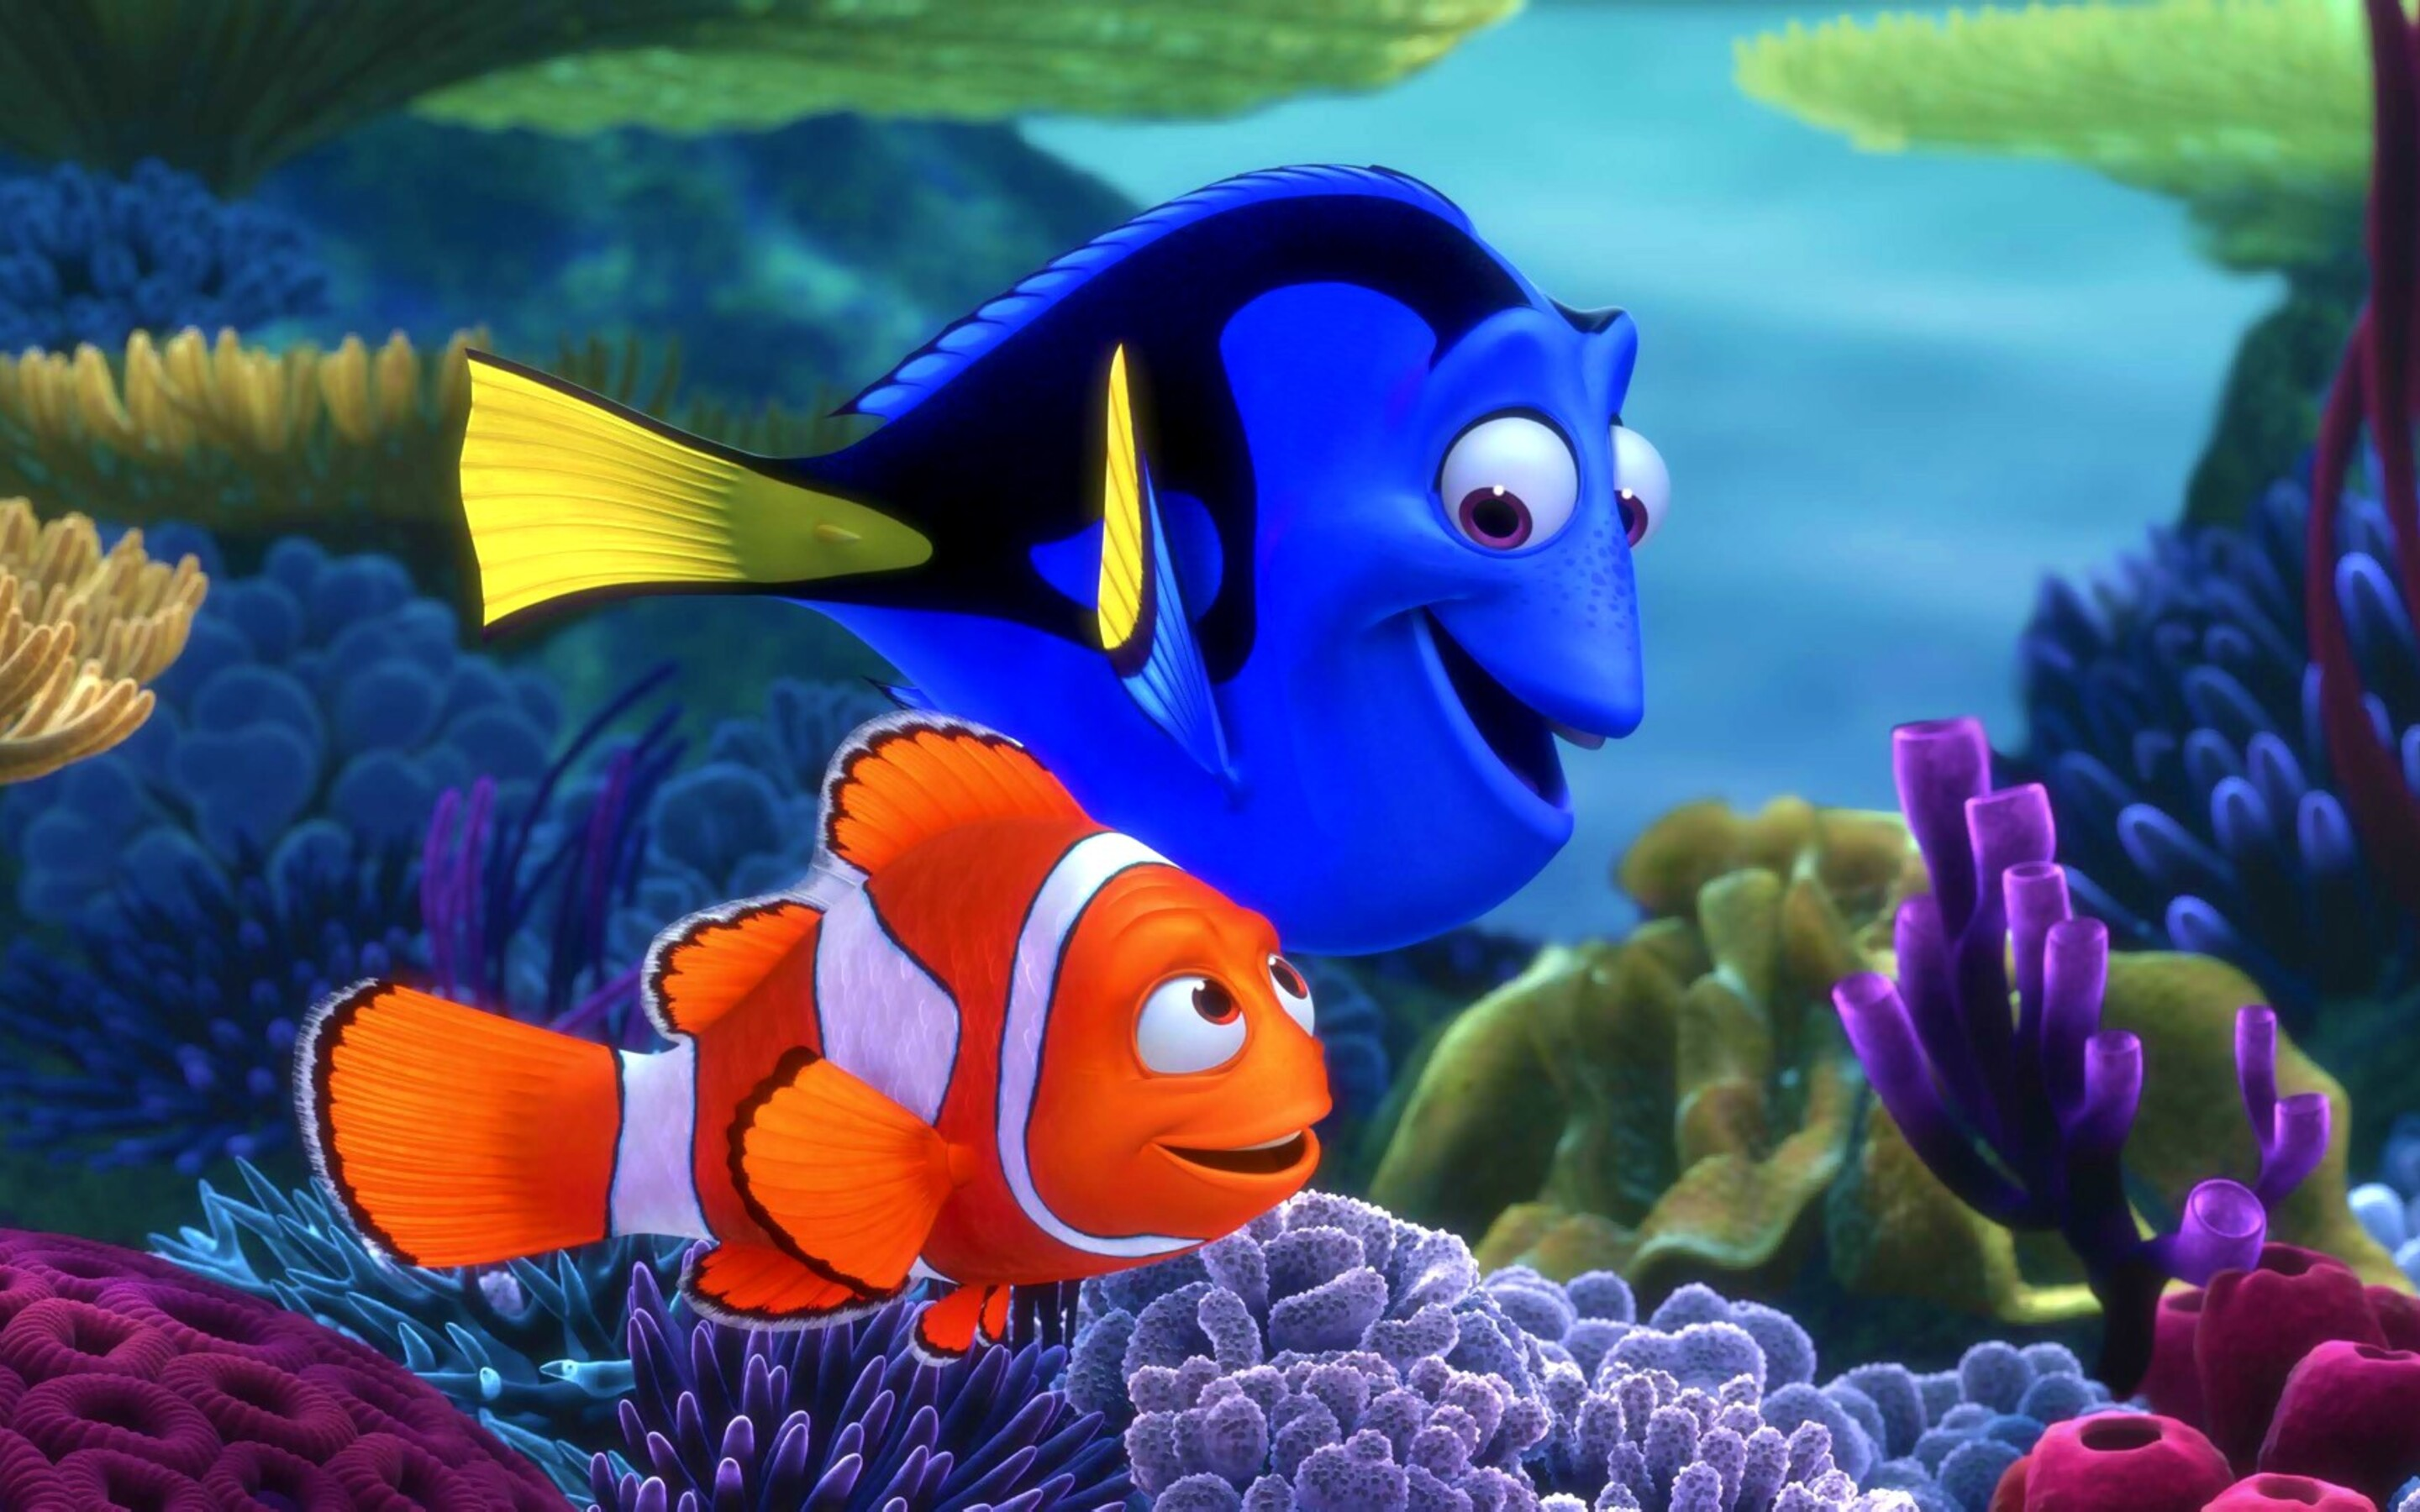 2880x1800 Finding Nemo Fishes Macbook Pro Retina HD 4k Wallpapers